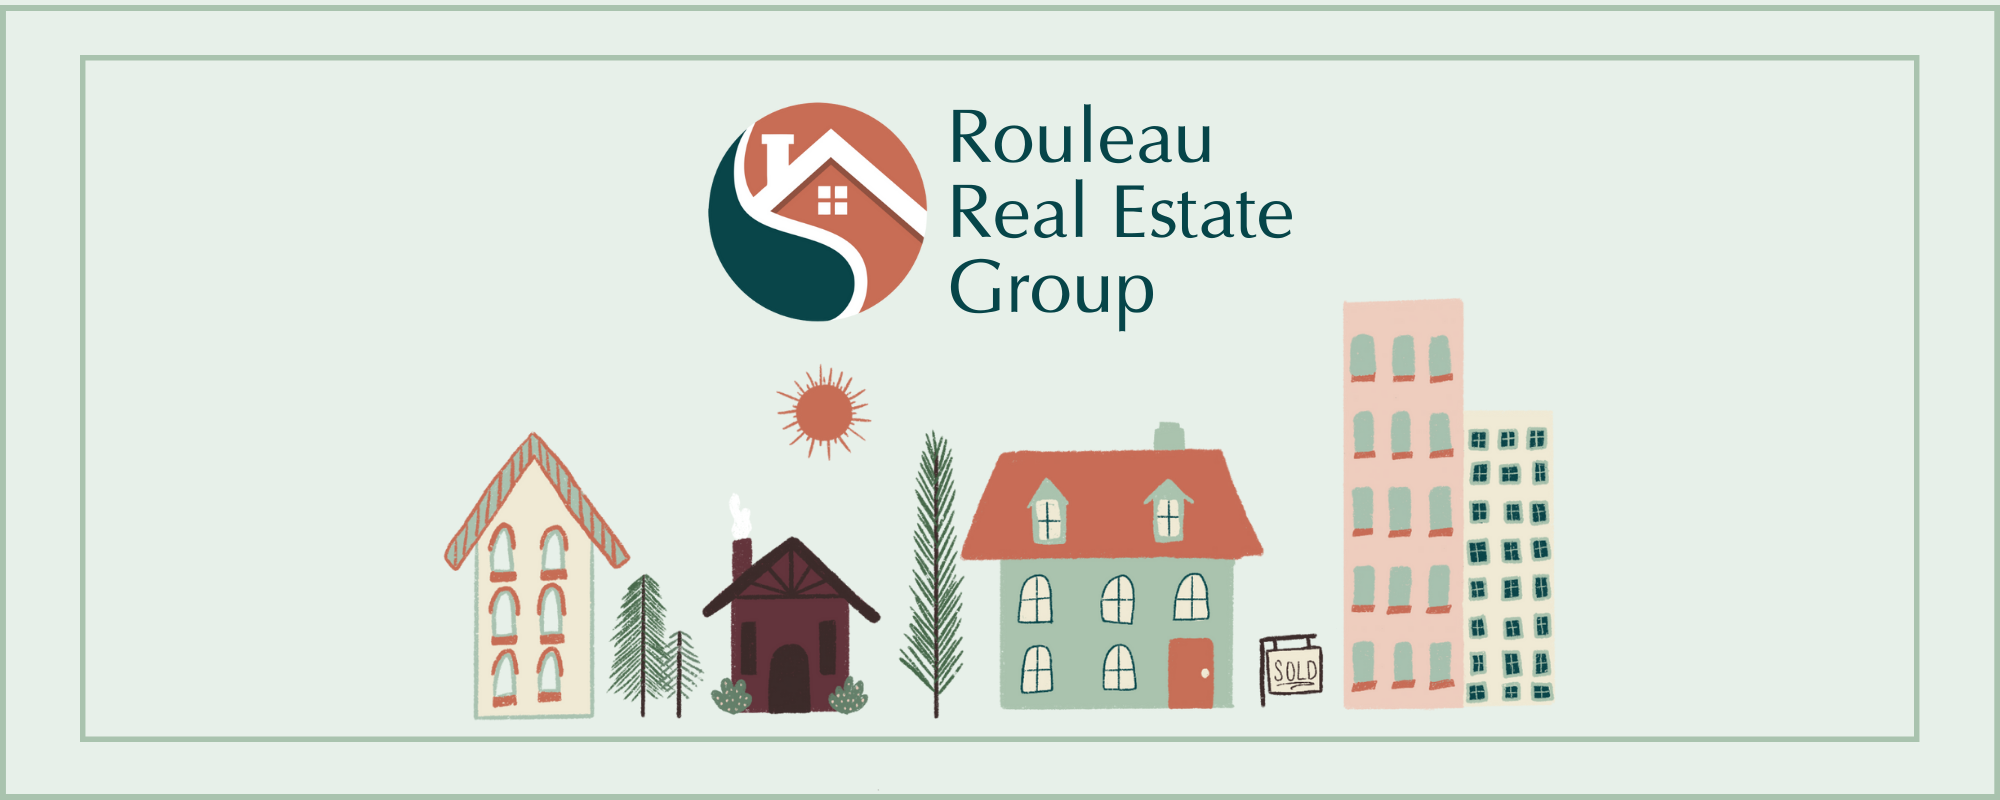 Rouleau Real Estate Group